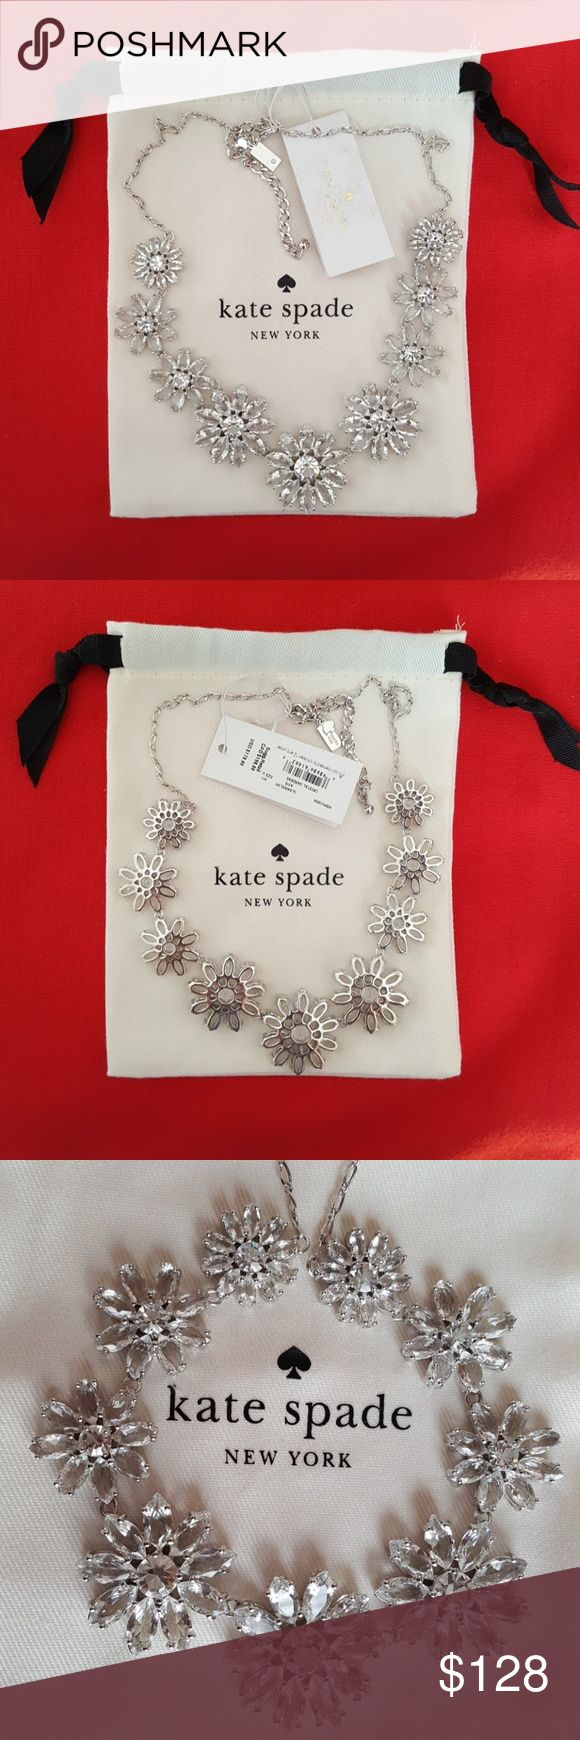 BRAND NEW KATE SPADE CRYSTAL GARDENS NECKLACE Authentic Kate Spade Crystal Gardens Necklace, sparkling crystals in a floral design, silvertone, lobster clasp. Brand new with tags in mint condition and designer gift pouch, foiled necklace gift box also included. Kate Spade Jewelry Necklaces